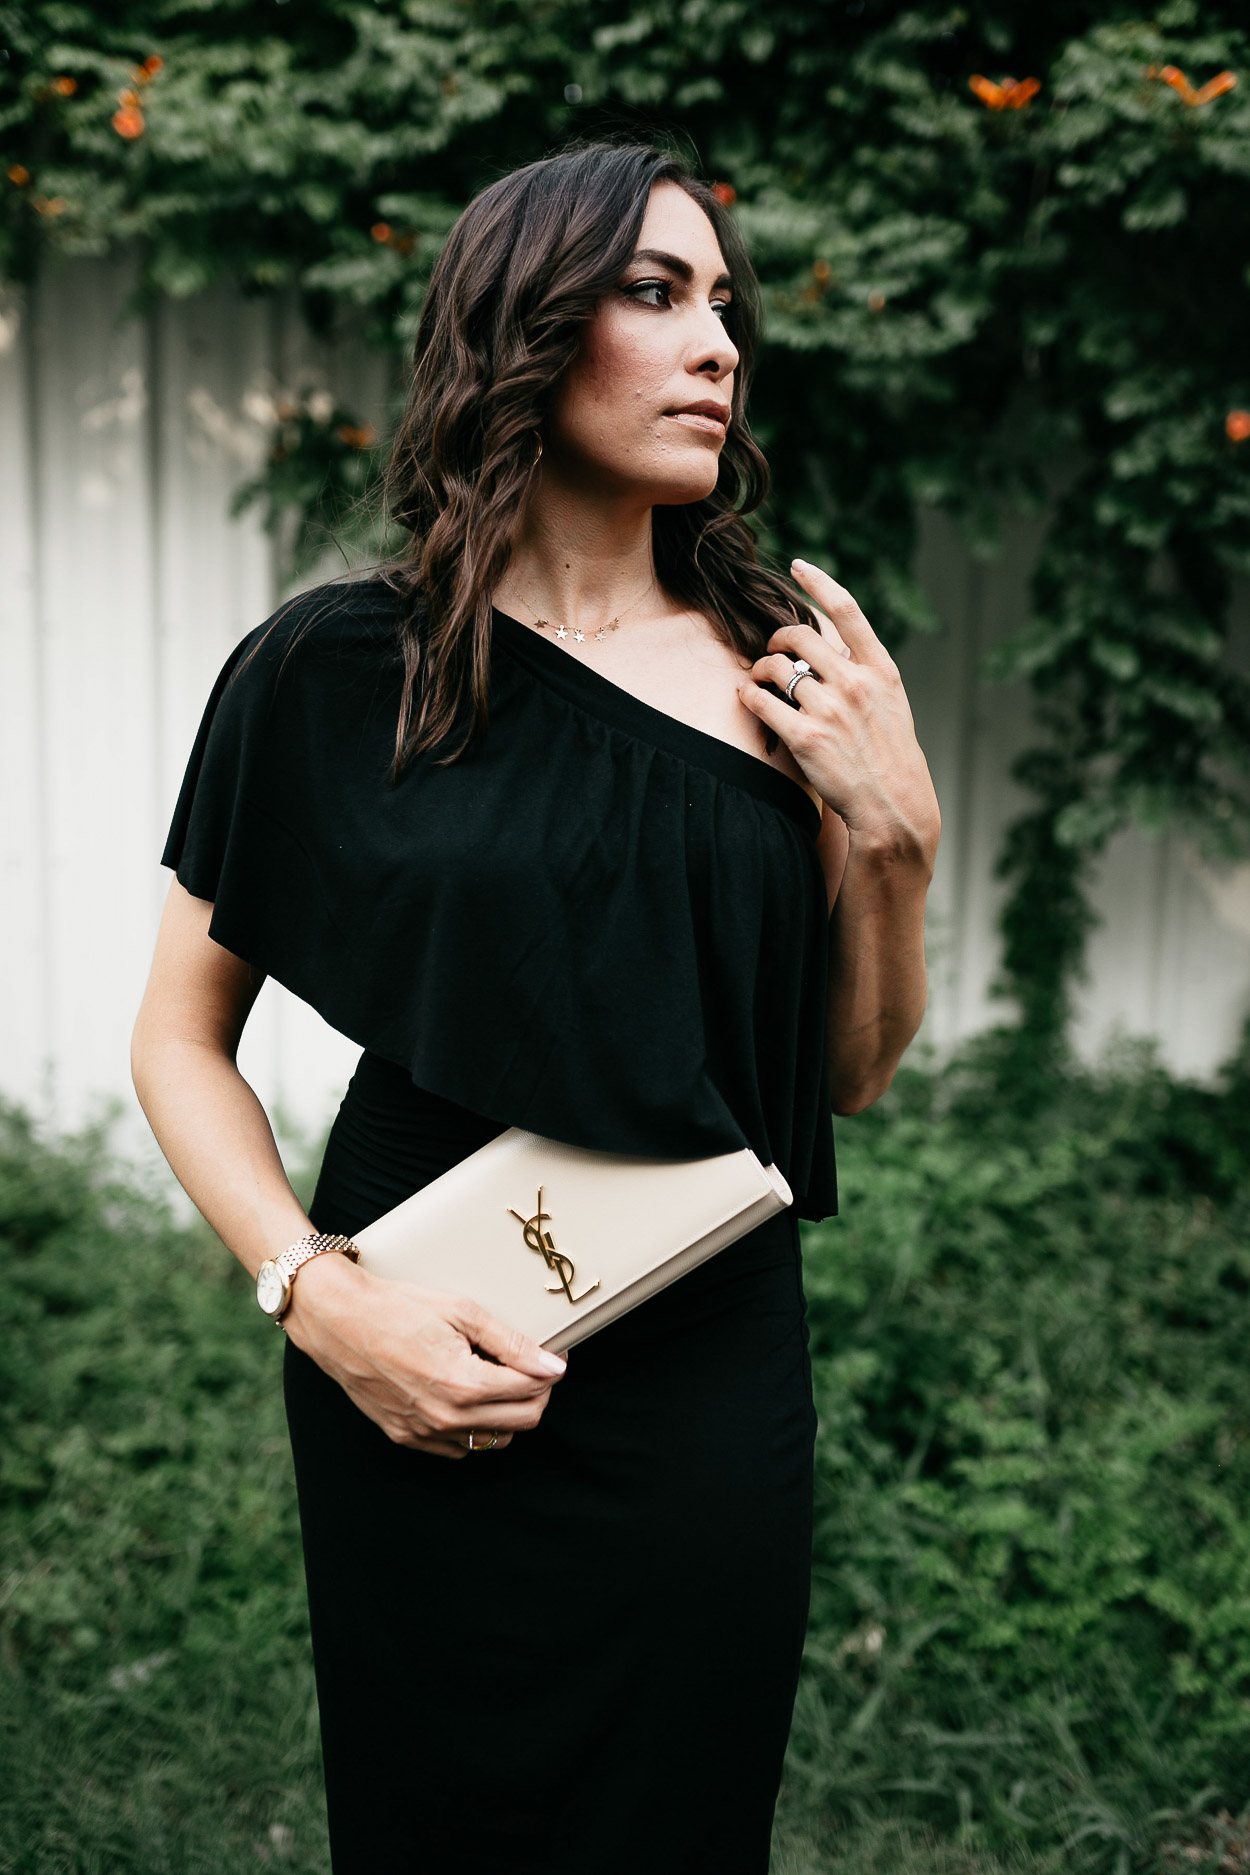 For date night, wear a classic black ruffle dress by Three Dots and compliment it with a nude YSL monogram clutch and mauve heels like fashion blogger Amanda of A Glam LIfestyle